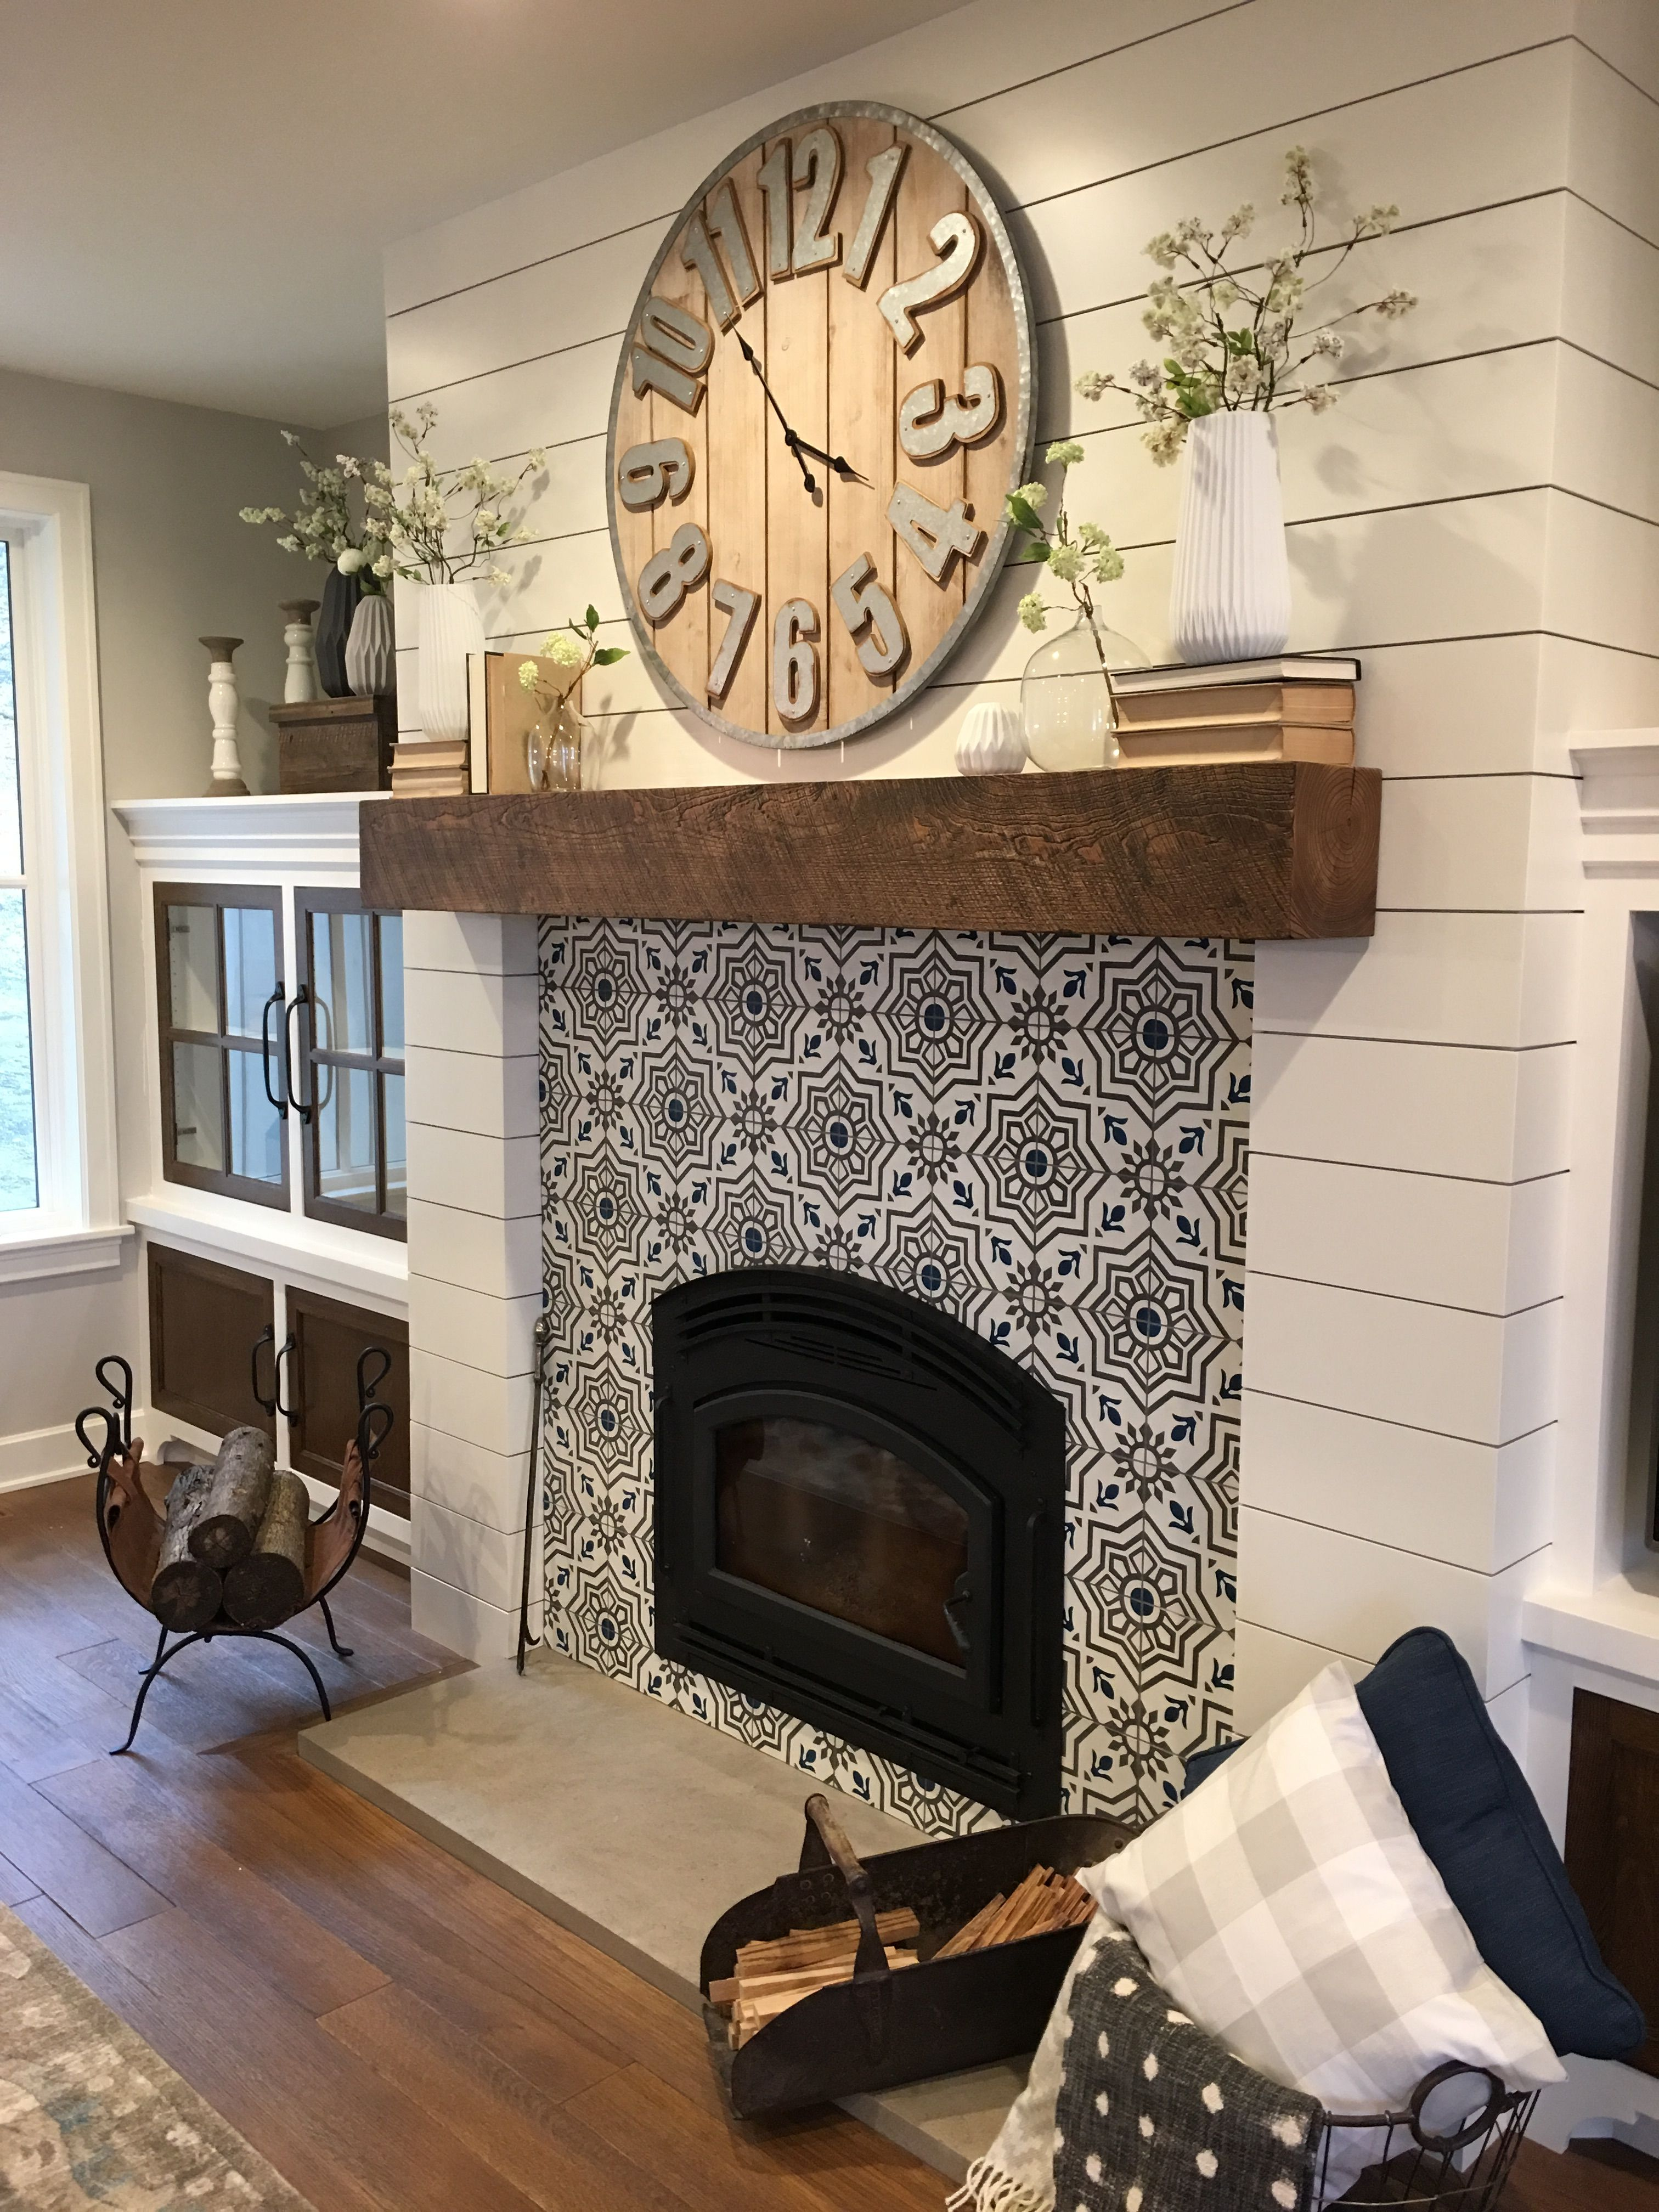 Perfect Mantel Decor With Large Wooden Clock And Tile Living Room Clocks Farm House Living Room Home Fireplace